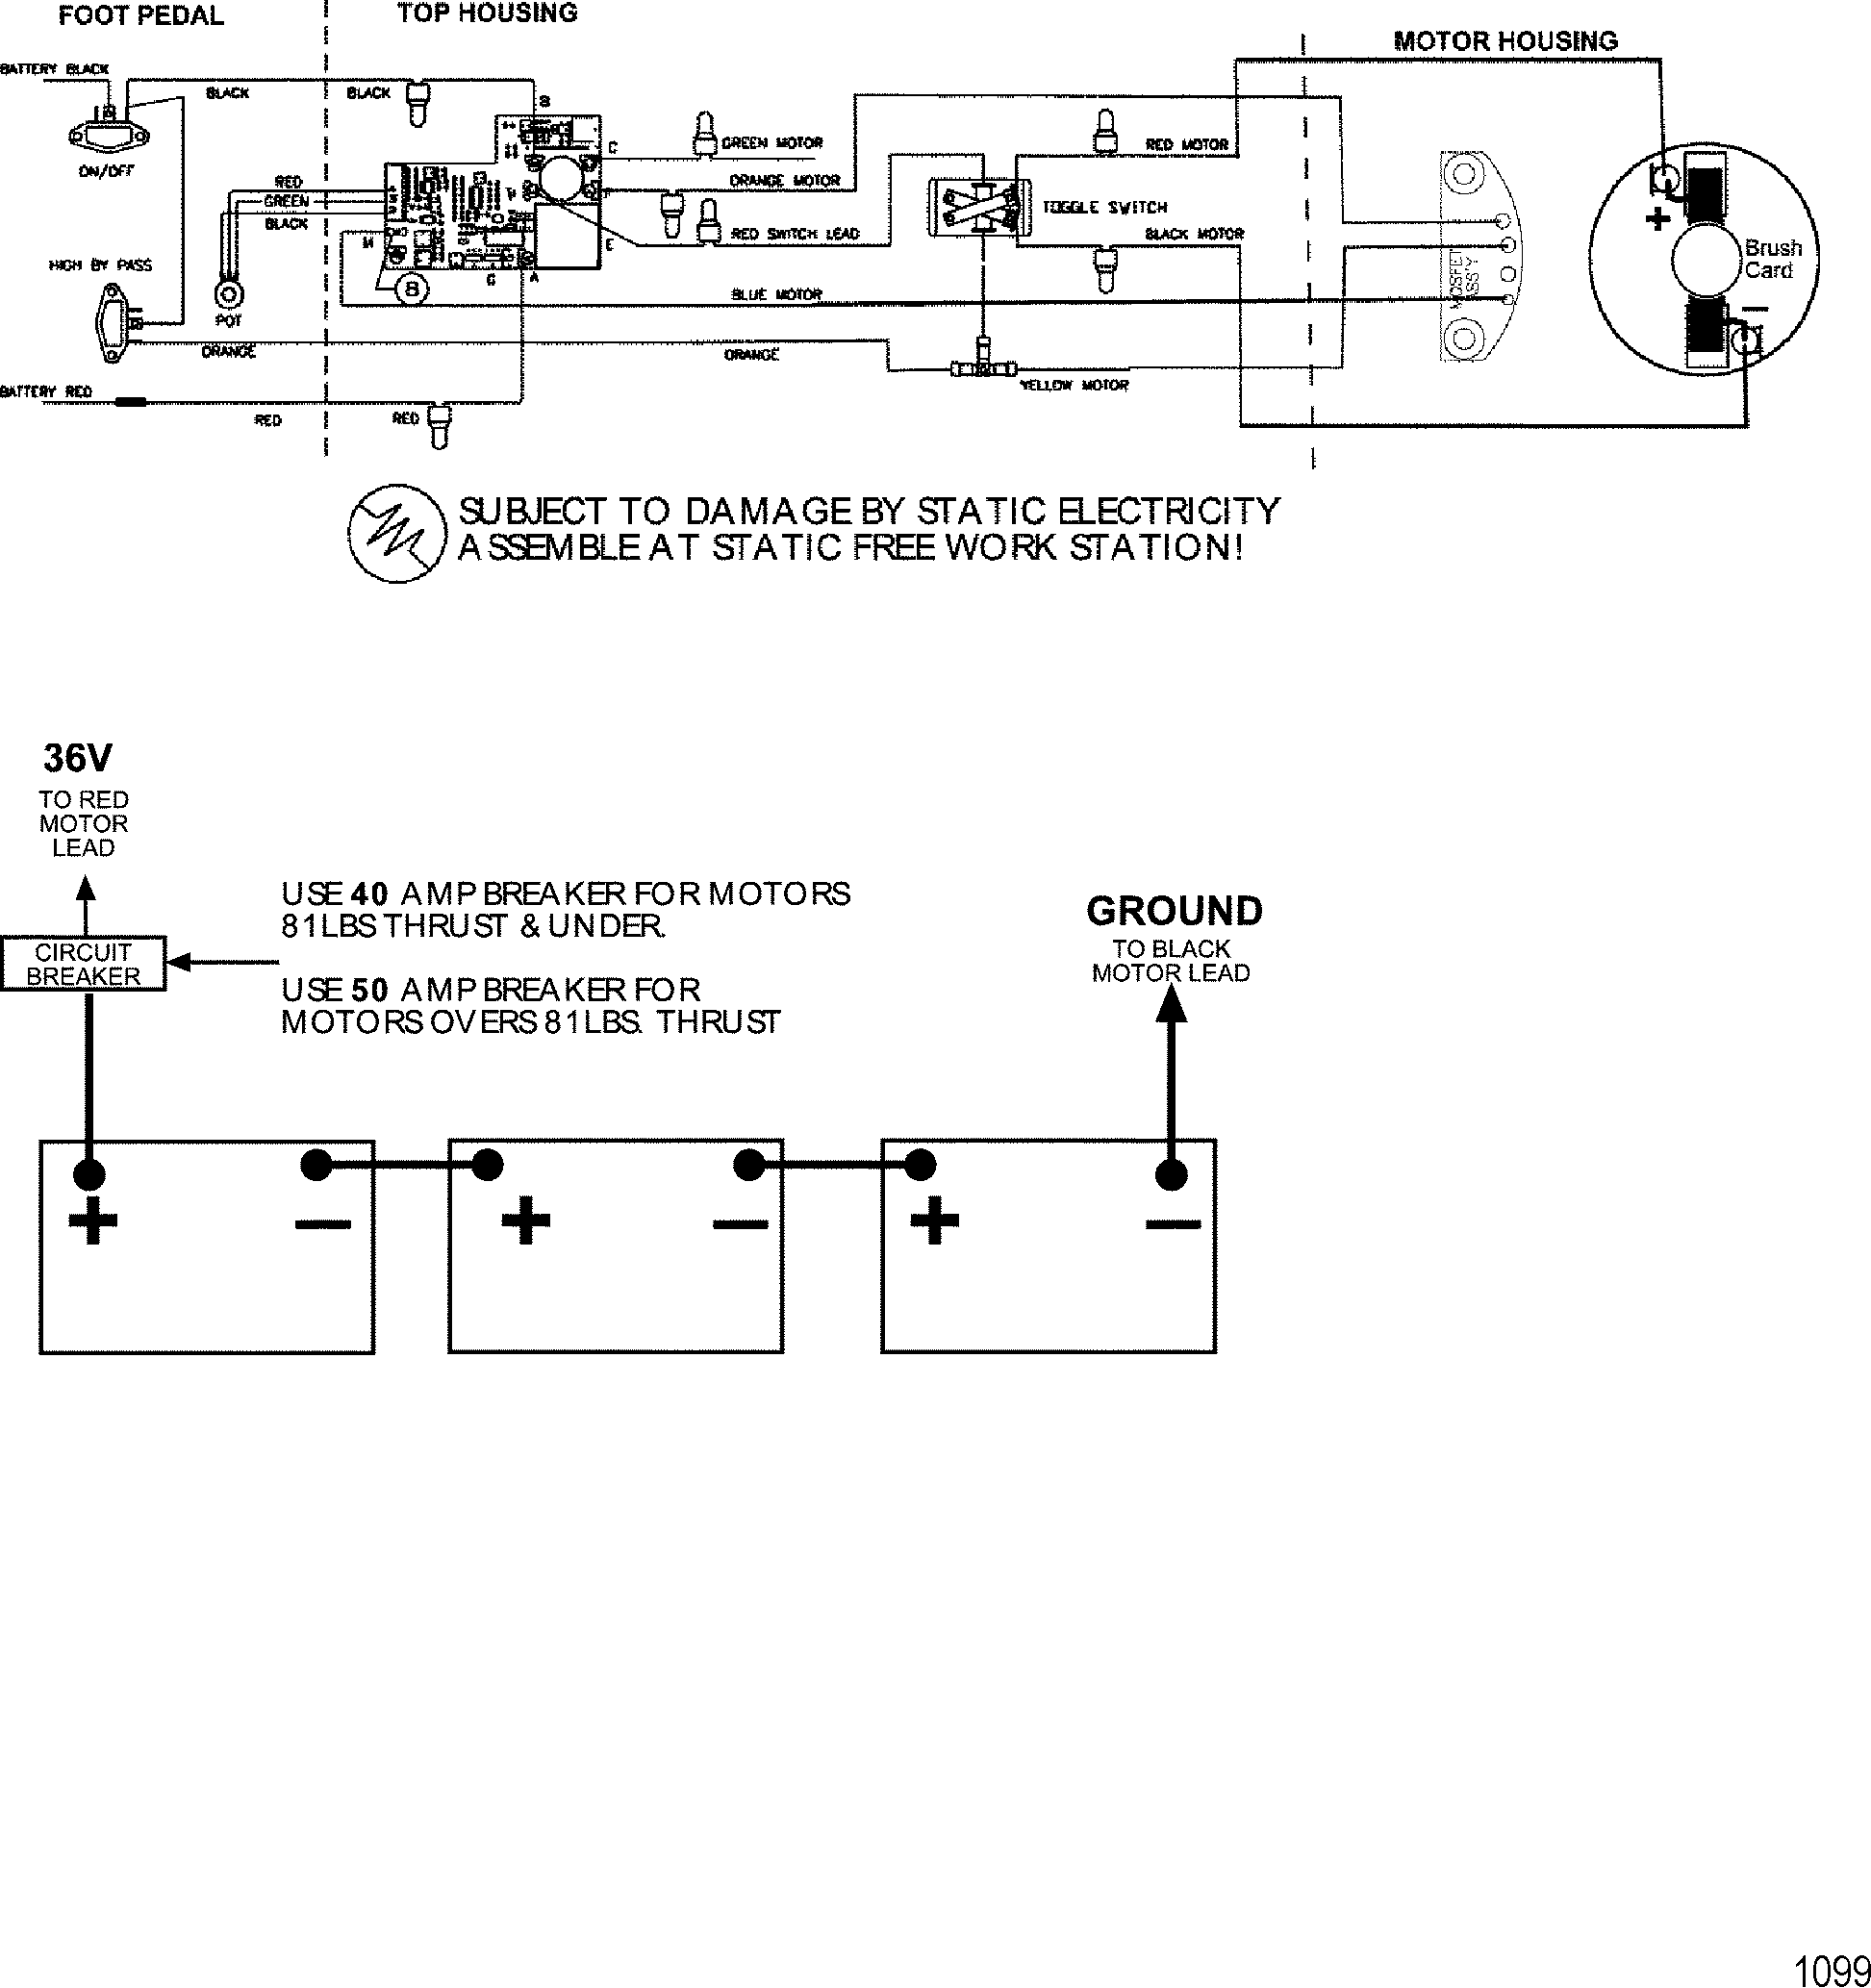 1099 diagrams 600338 motorguide trolling motor wiring diagram motorguide brute trolling motor wiring diagram at bakdesigns.co